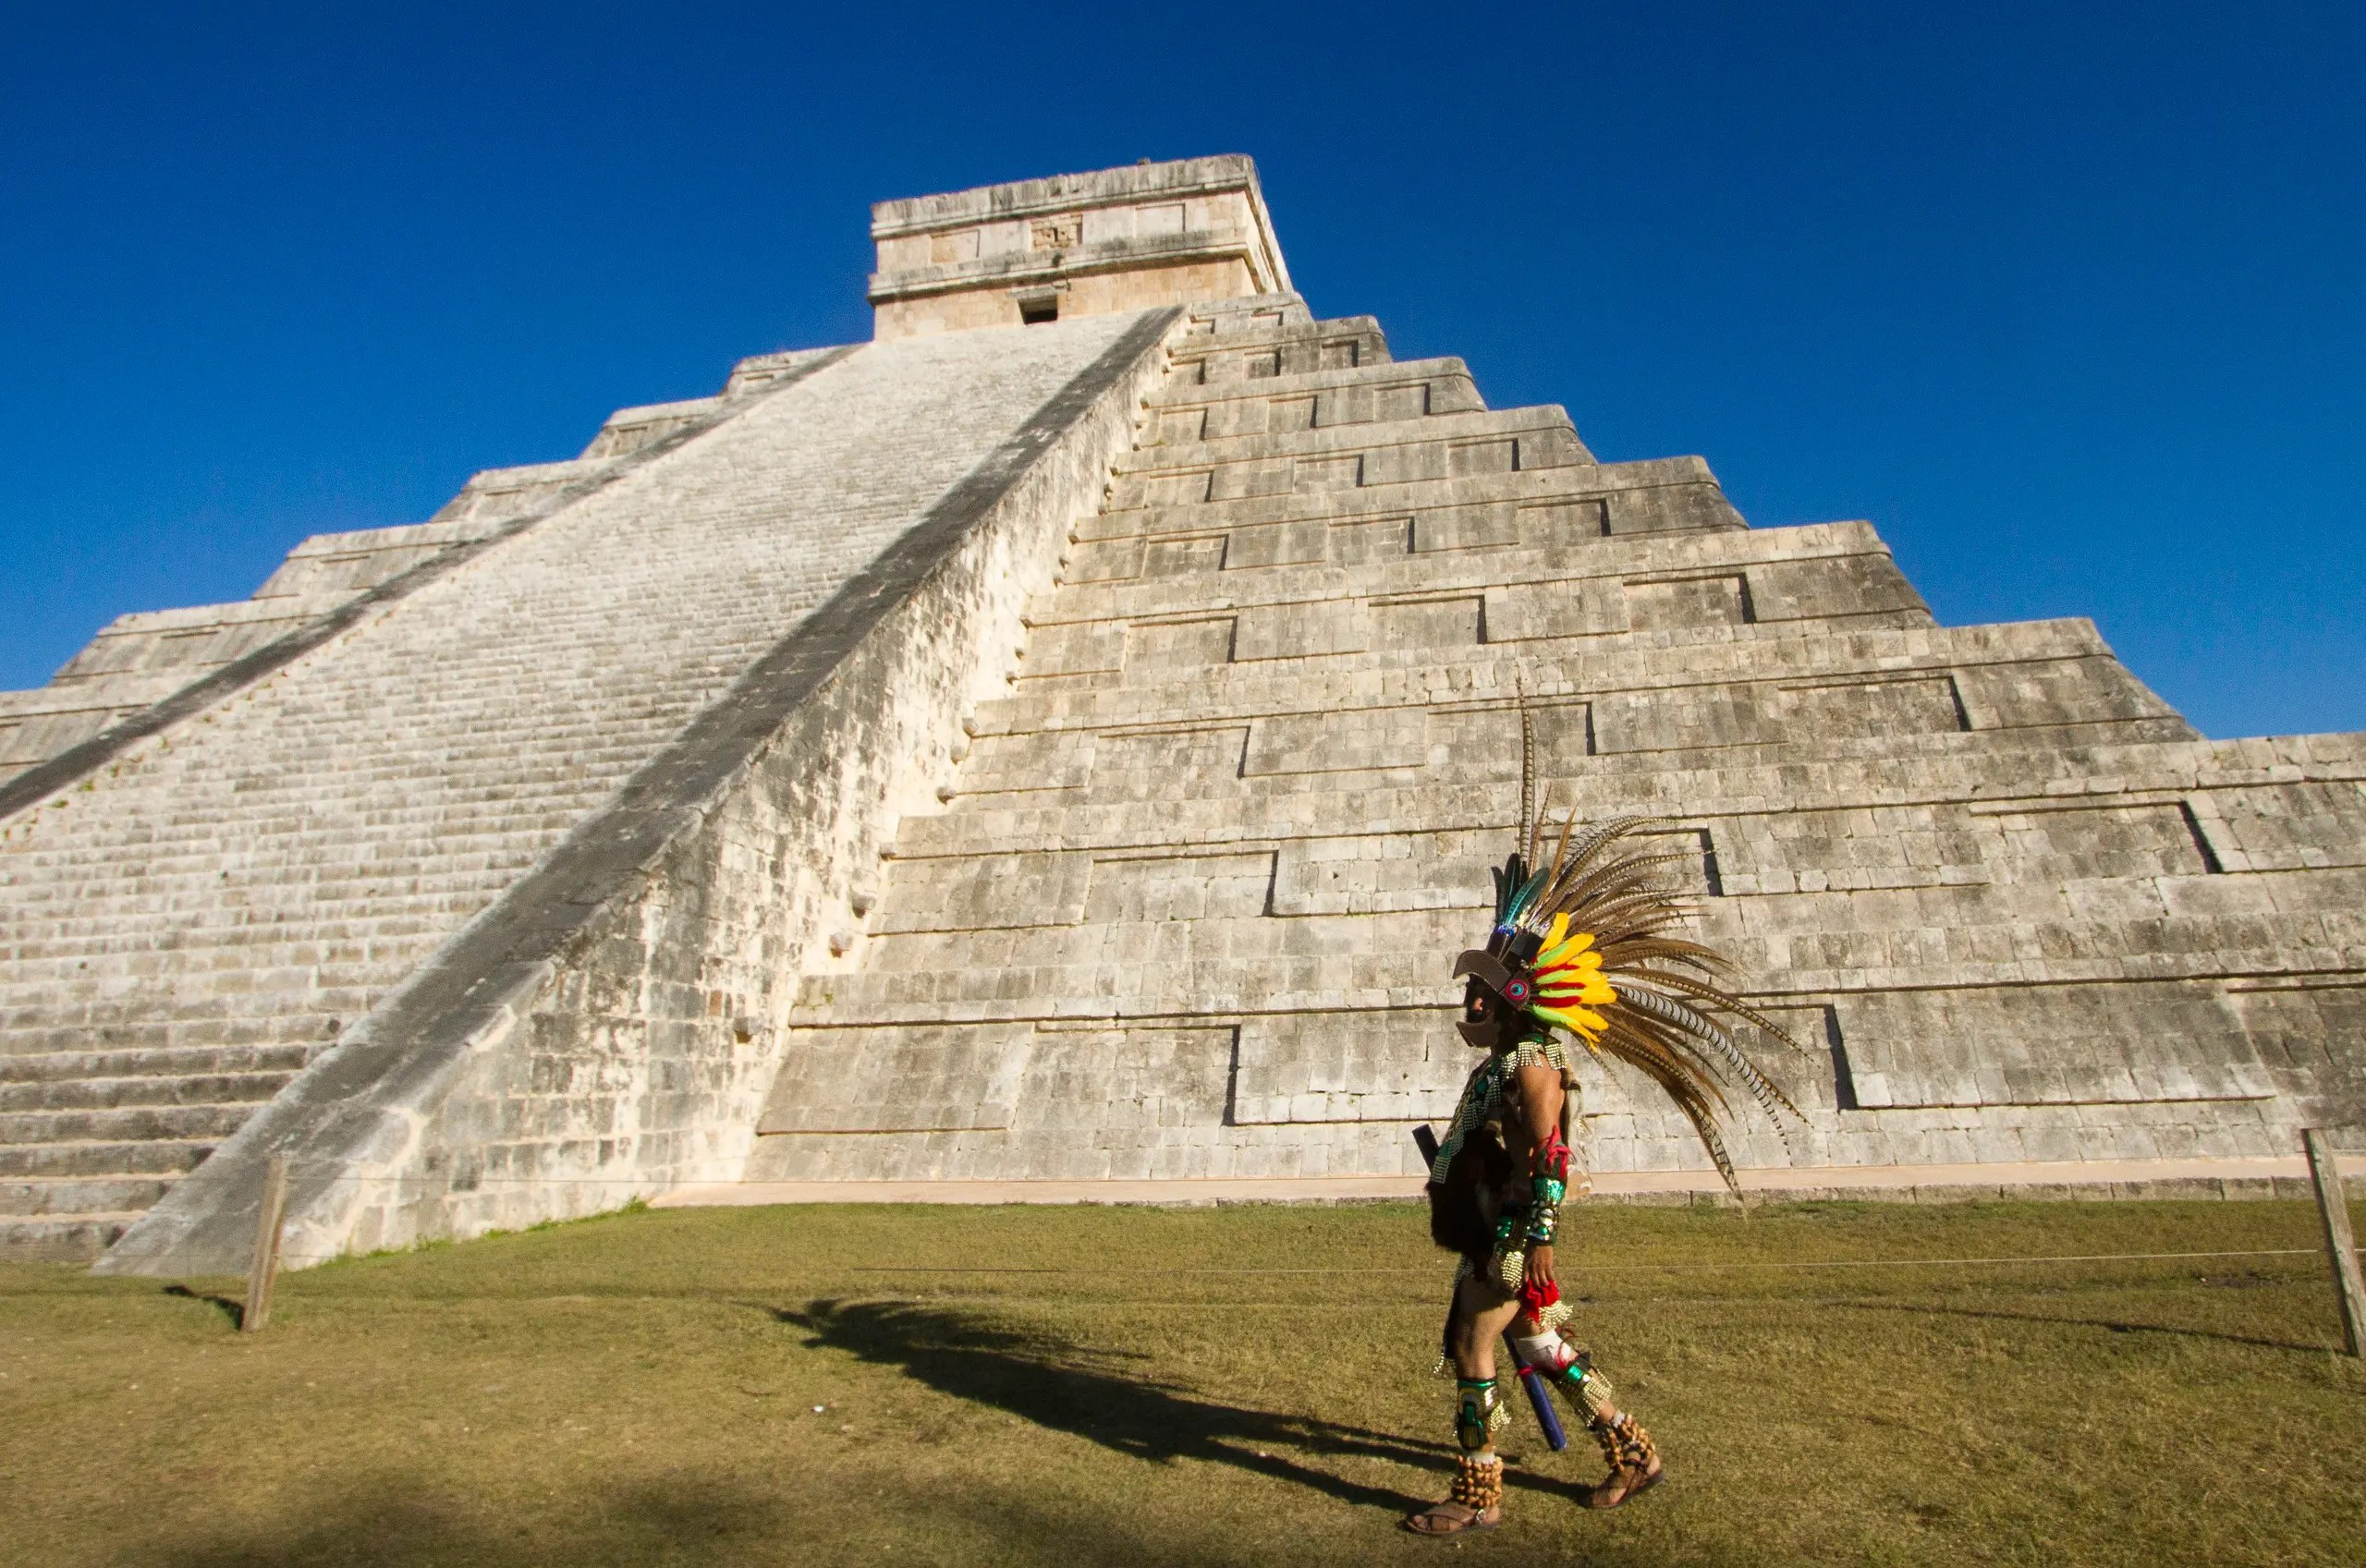 A Mexican man wearing a pre-hispanic costume walk next to the kukulkan pyramid at the Chichen Itza archaeological park, in Yucatan state, Mexico on December 20, 2012. (AFP)